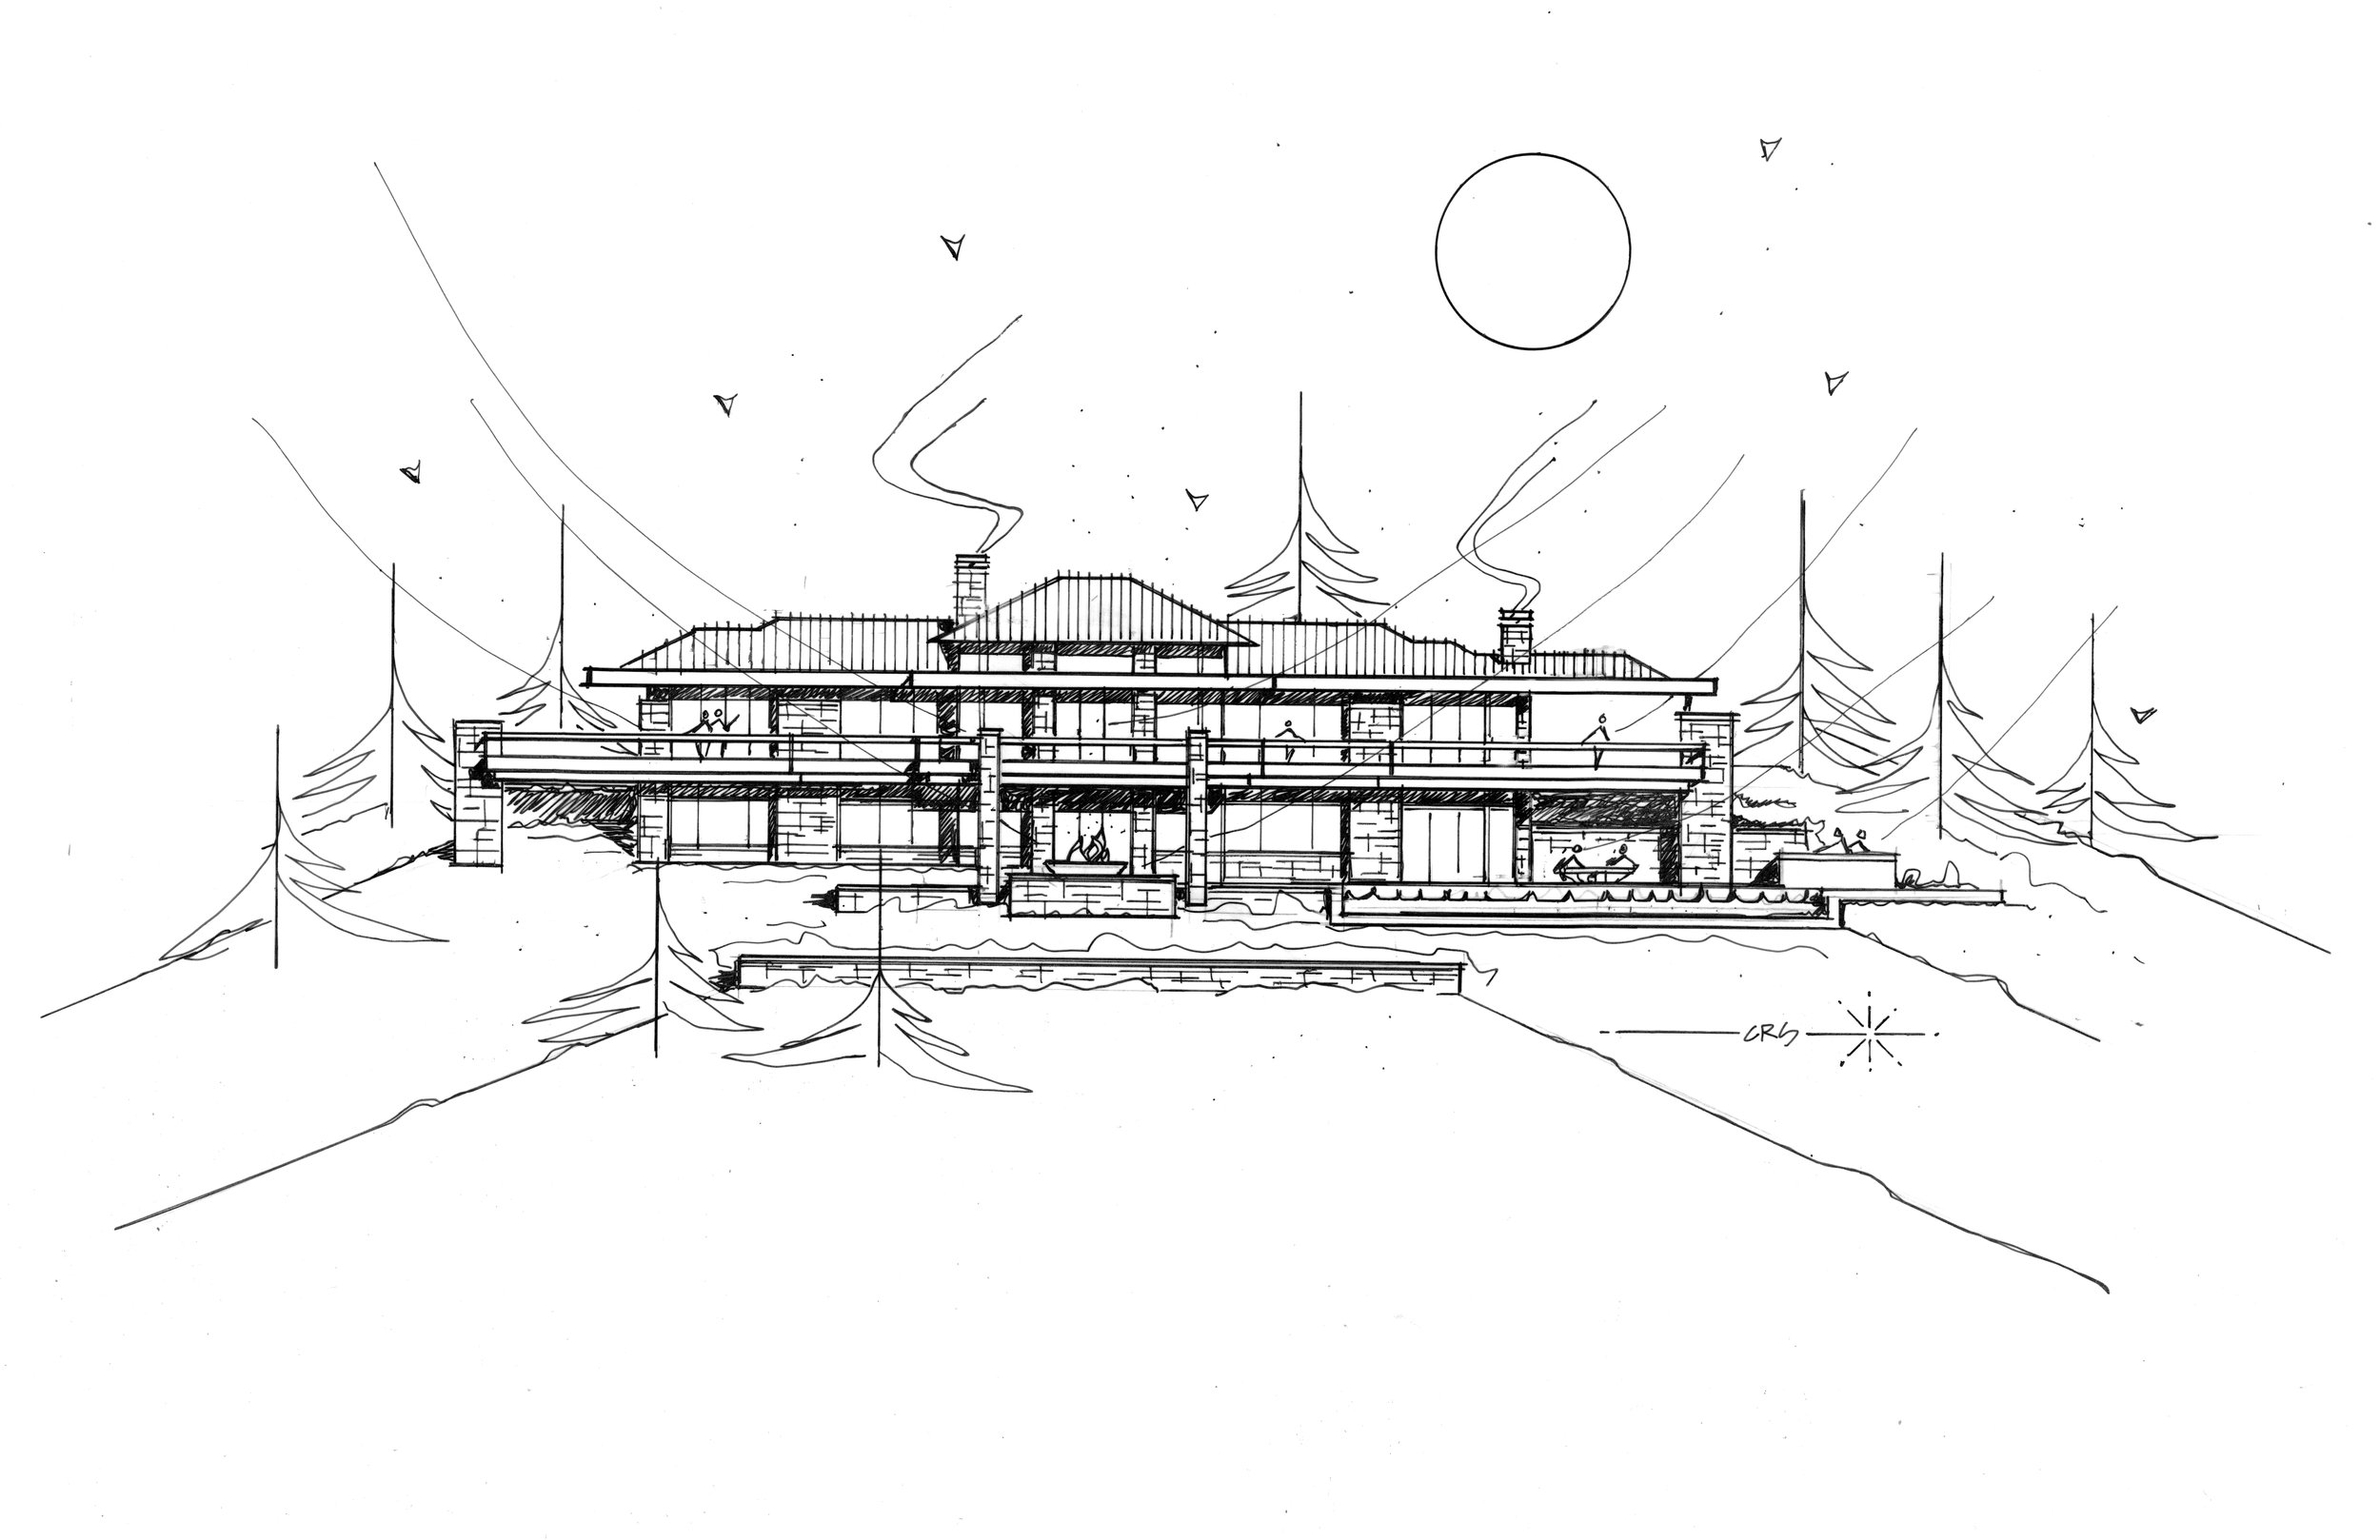 Drawing by architect Charles Stinson